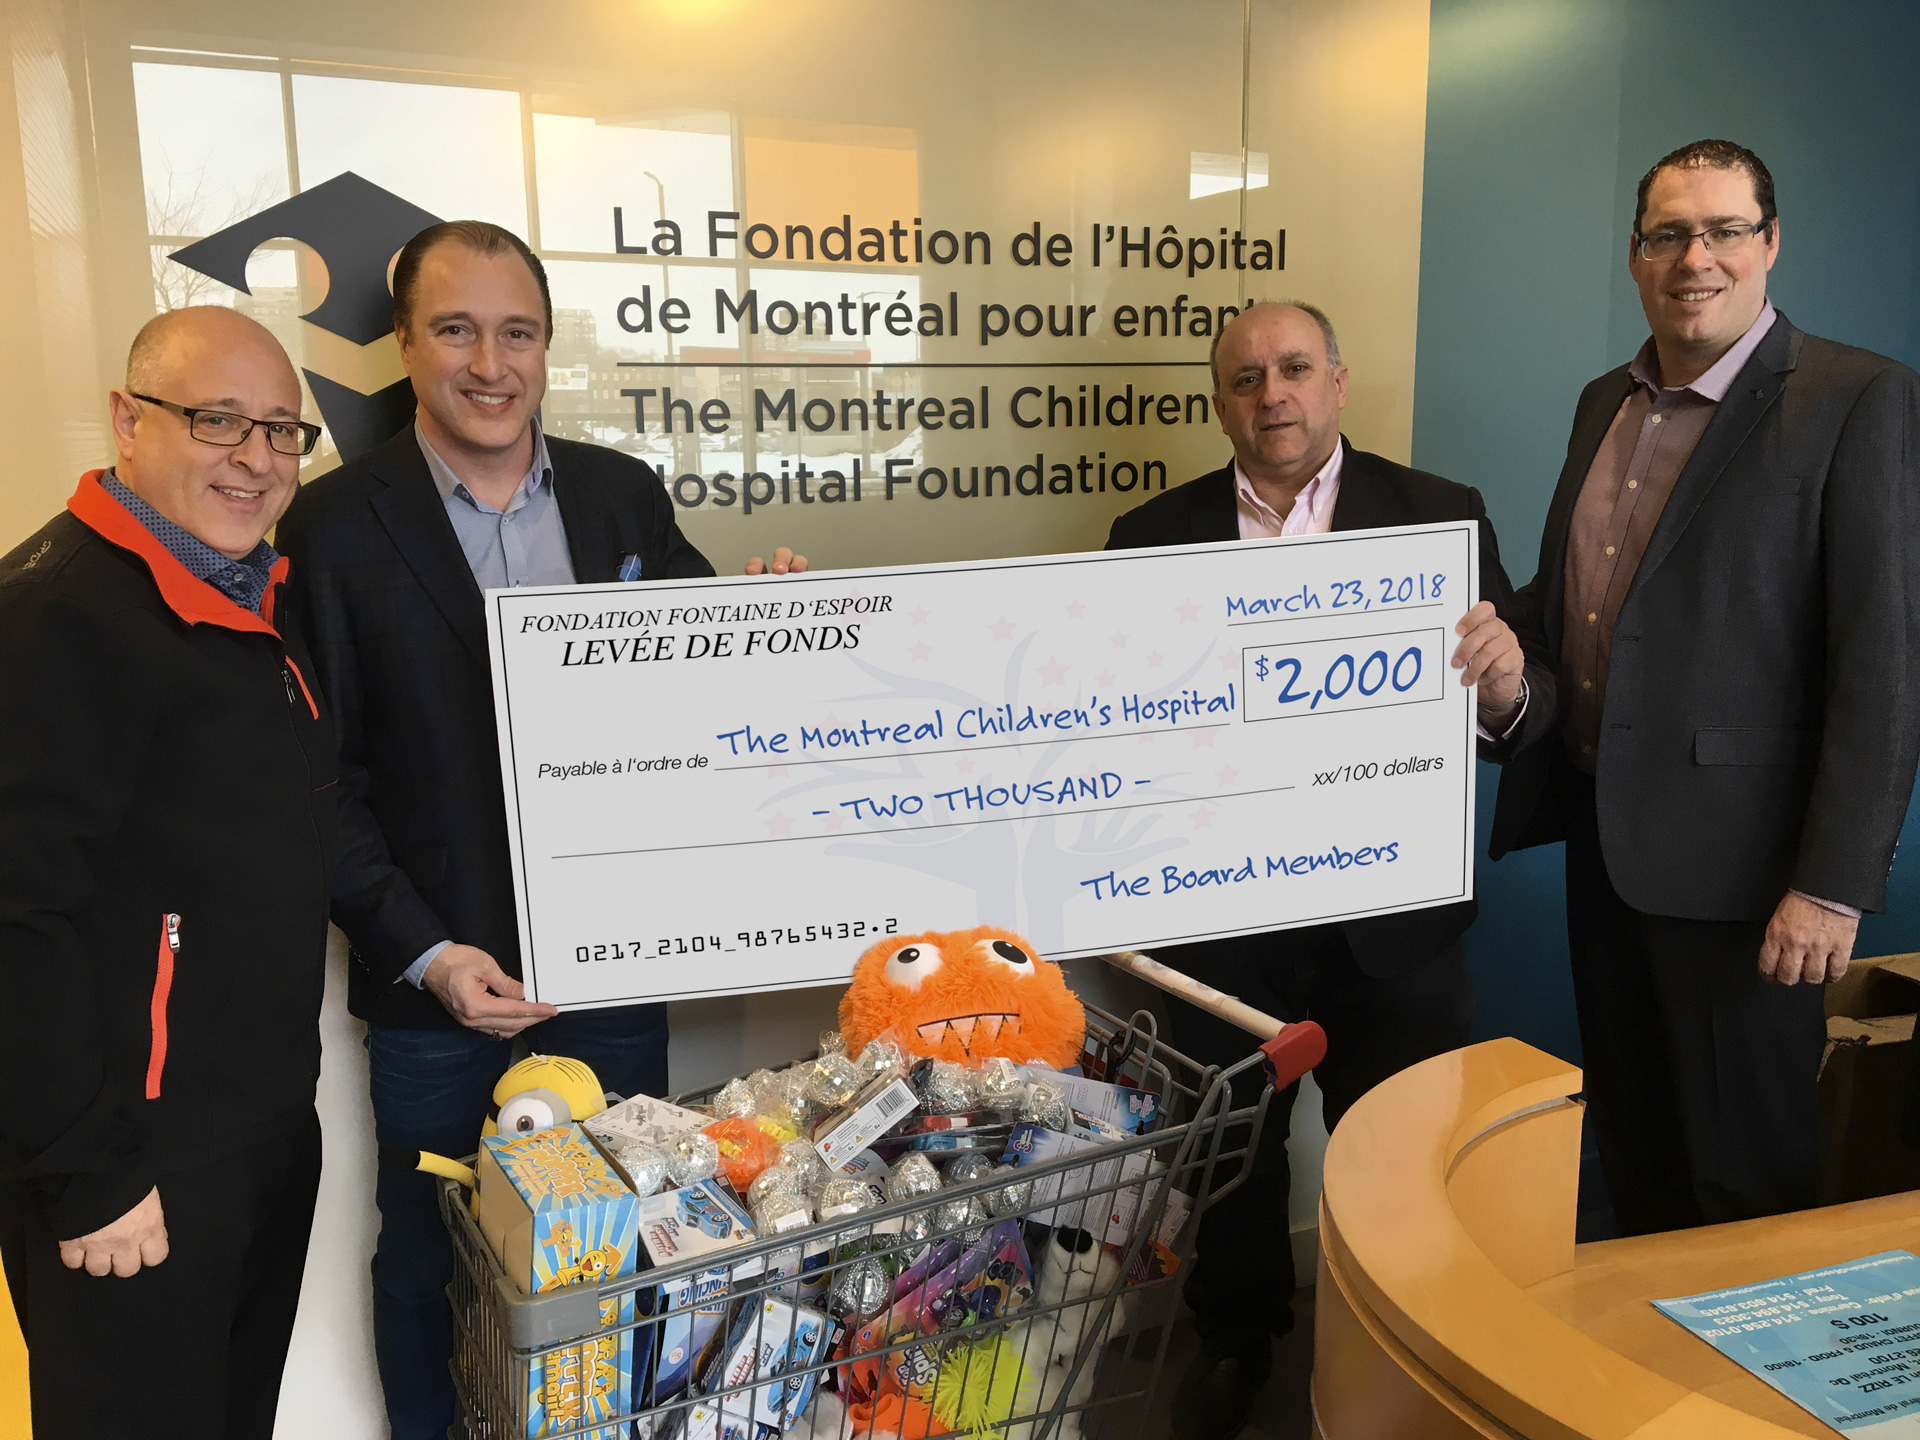 Donation to The Montreal Children's Hospital Foundation